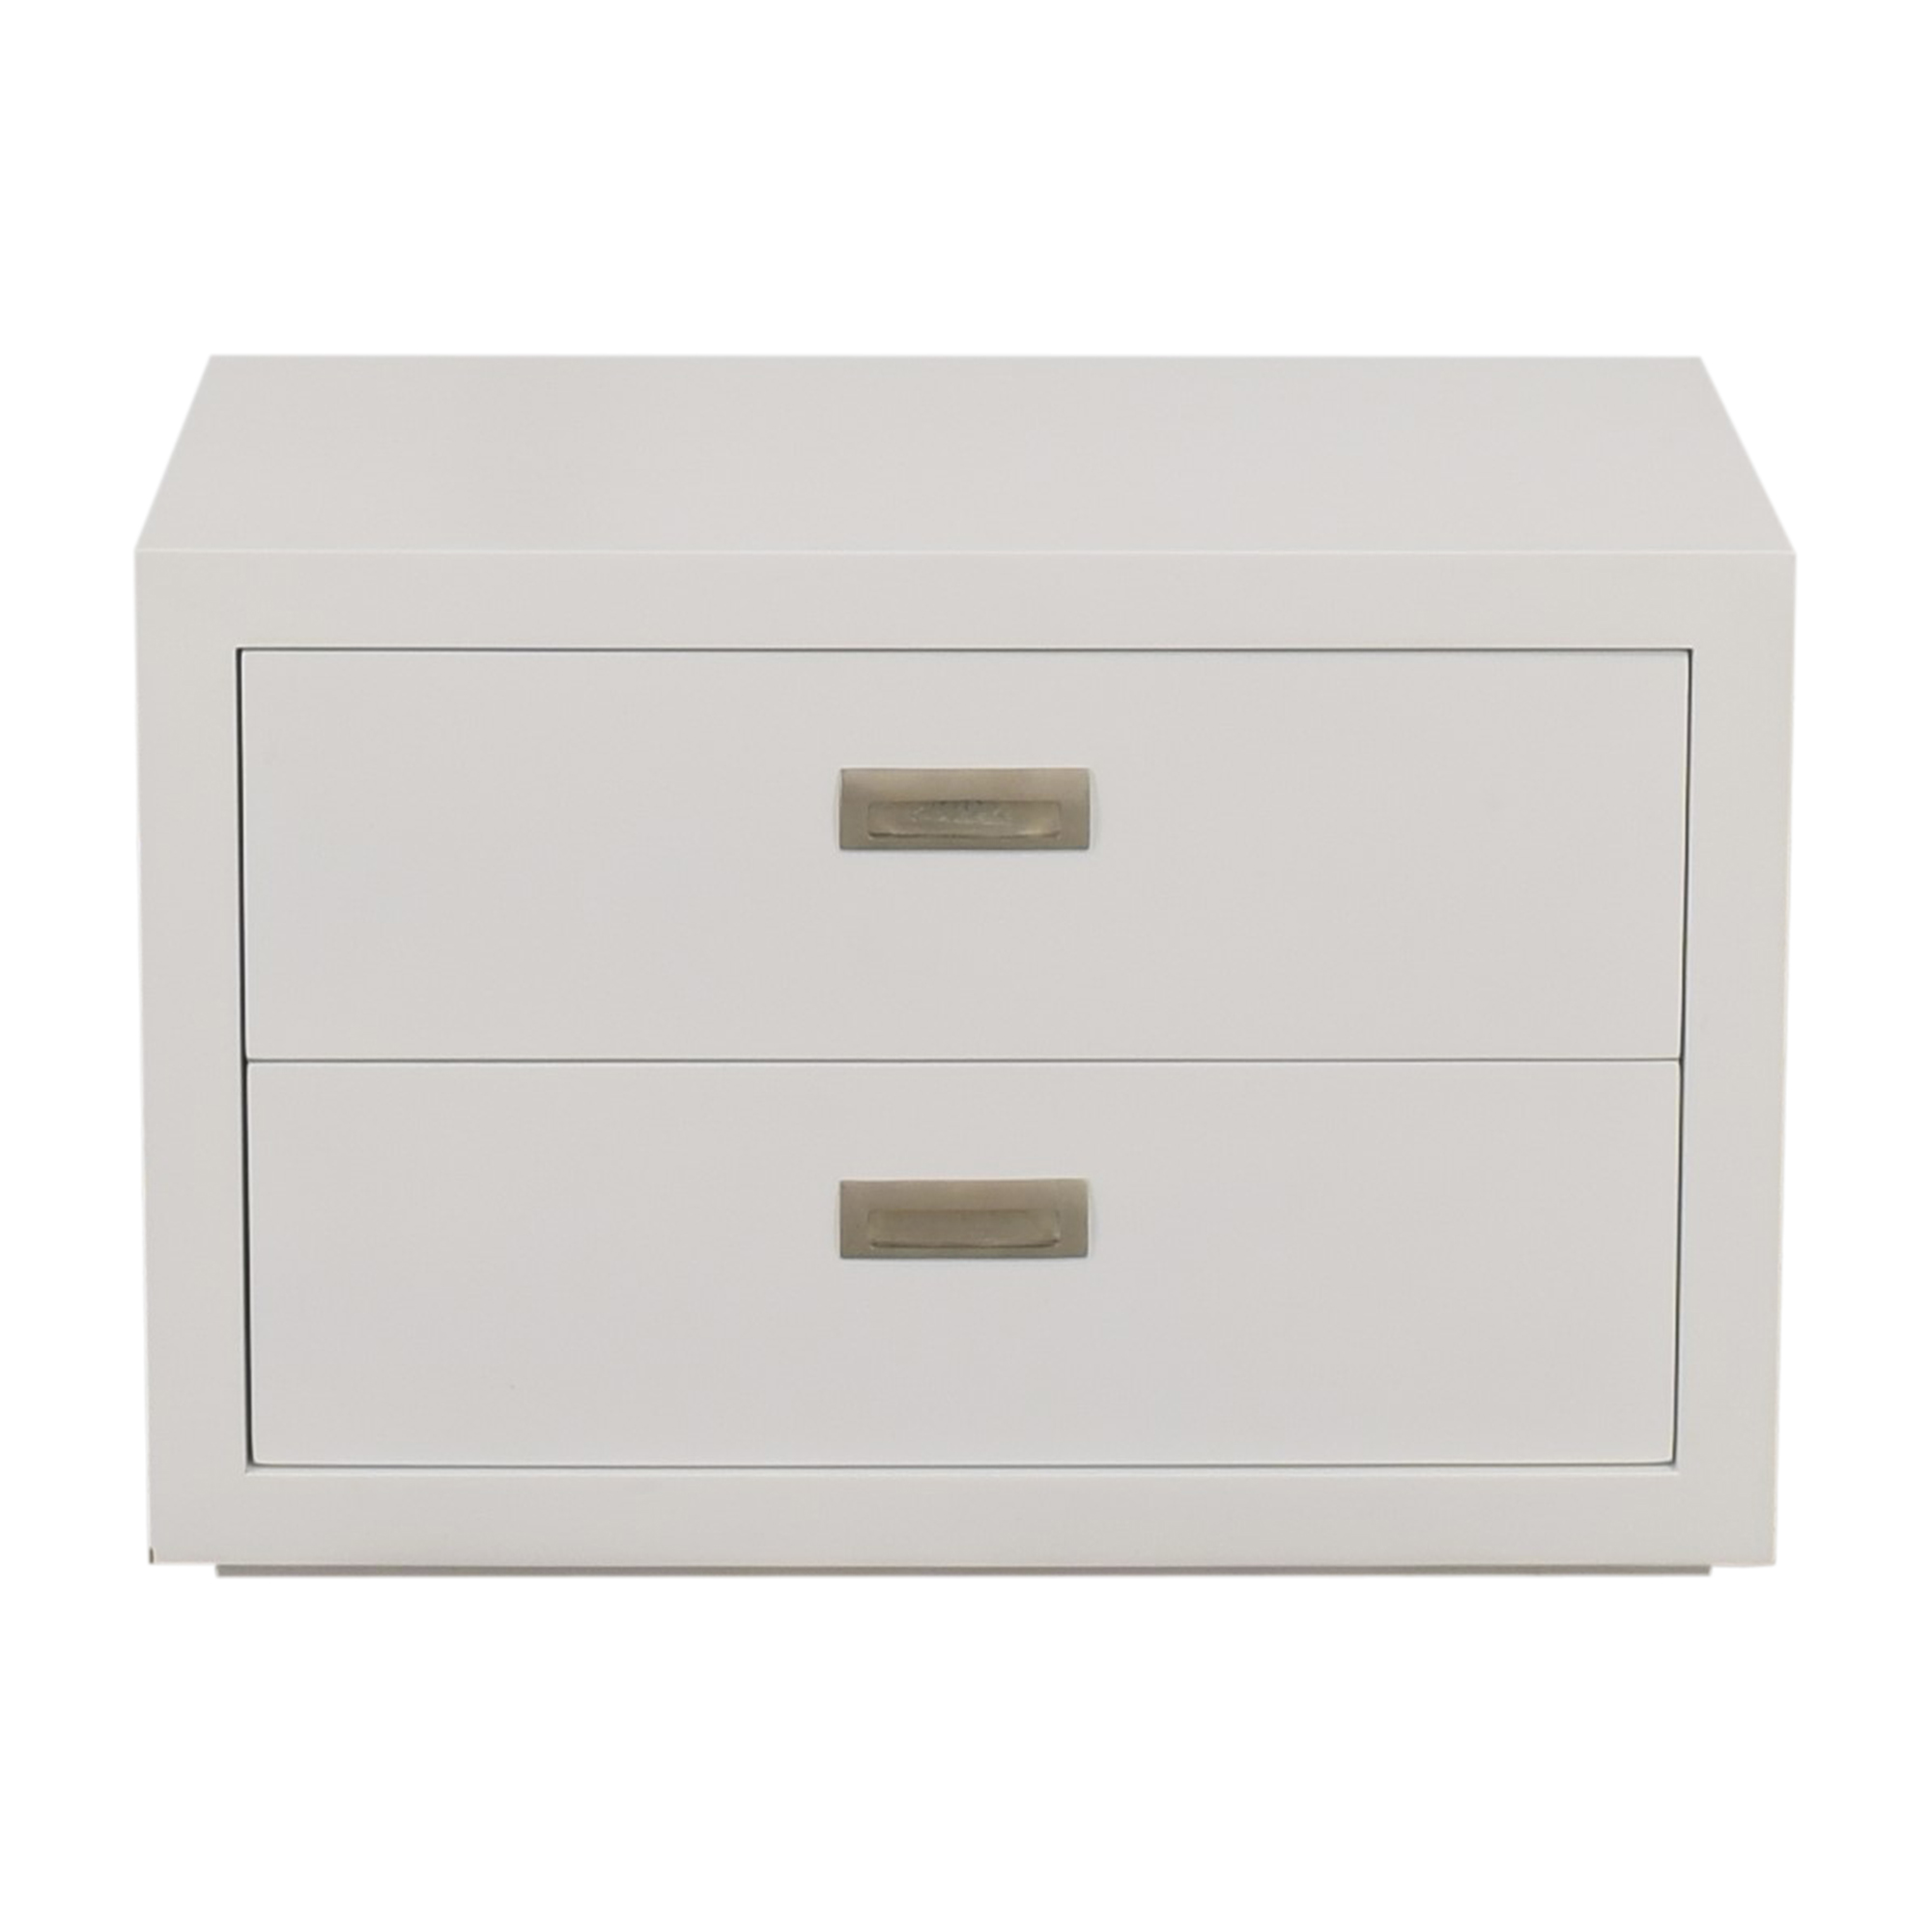 buy Crate & Barrel Crate & Barrel Aspect Modular 2-Drawer Storage Unit online